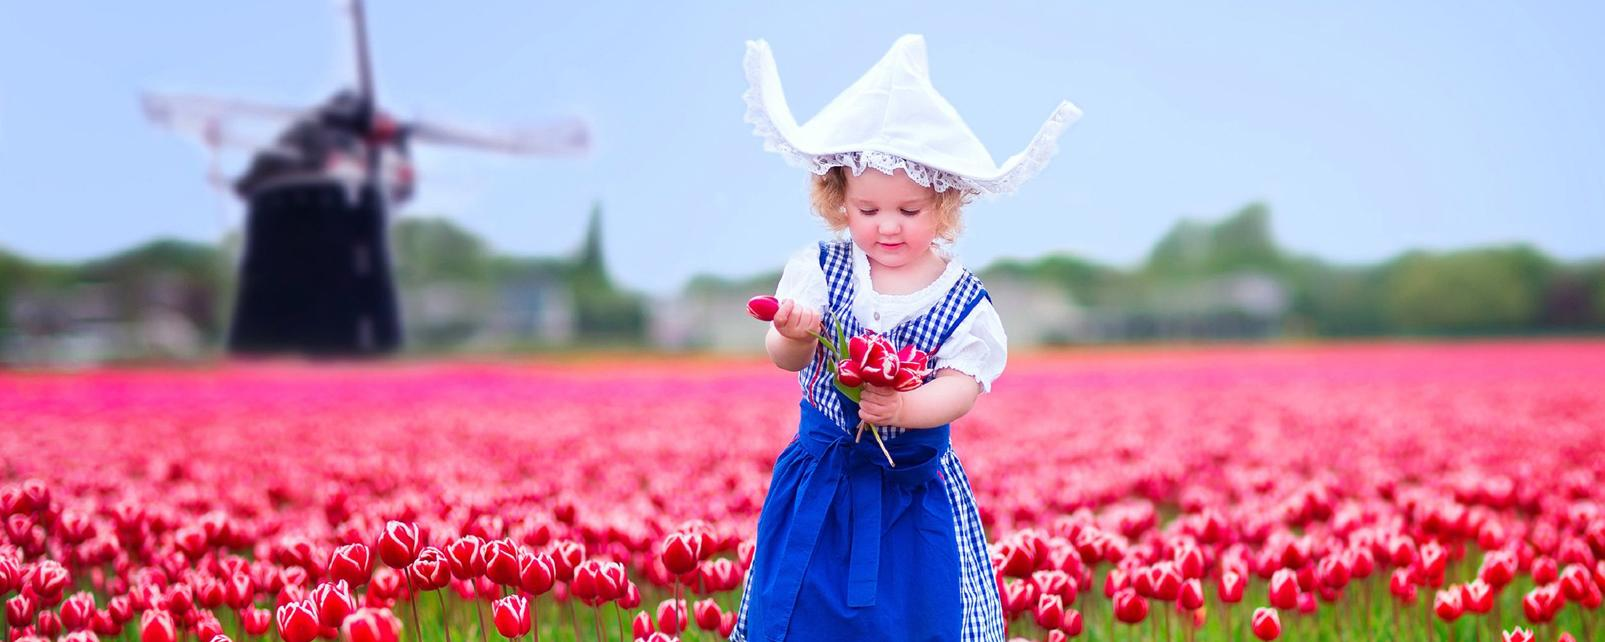 Europe, Pays-Bas, Amsterdam, fillette, champ, tulipe, moulin à vent, costume traditionnel,